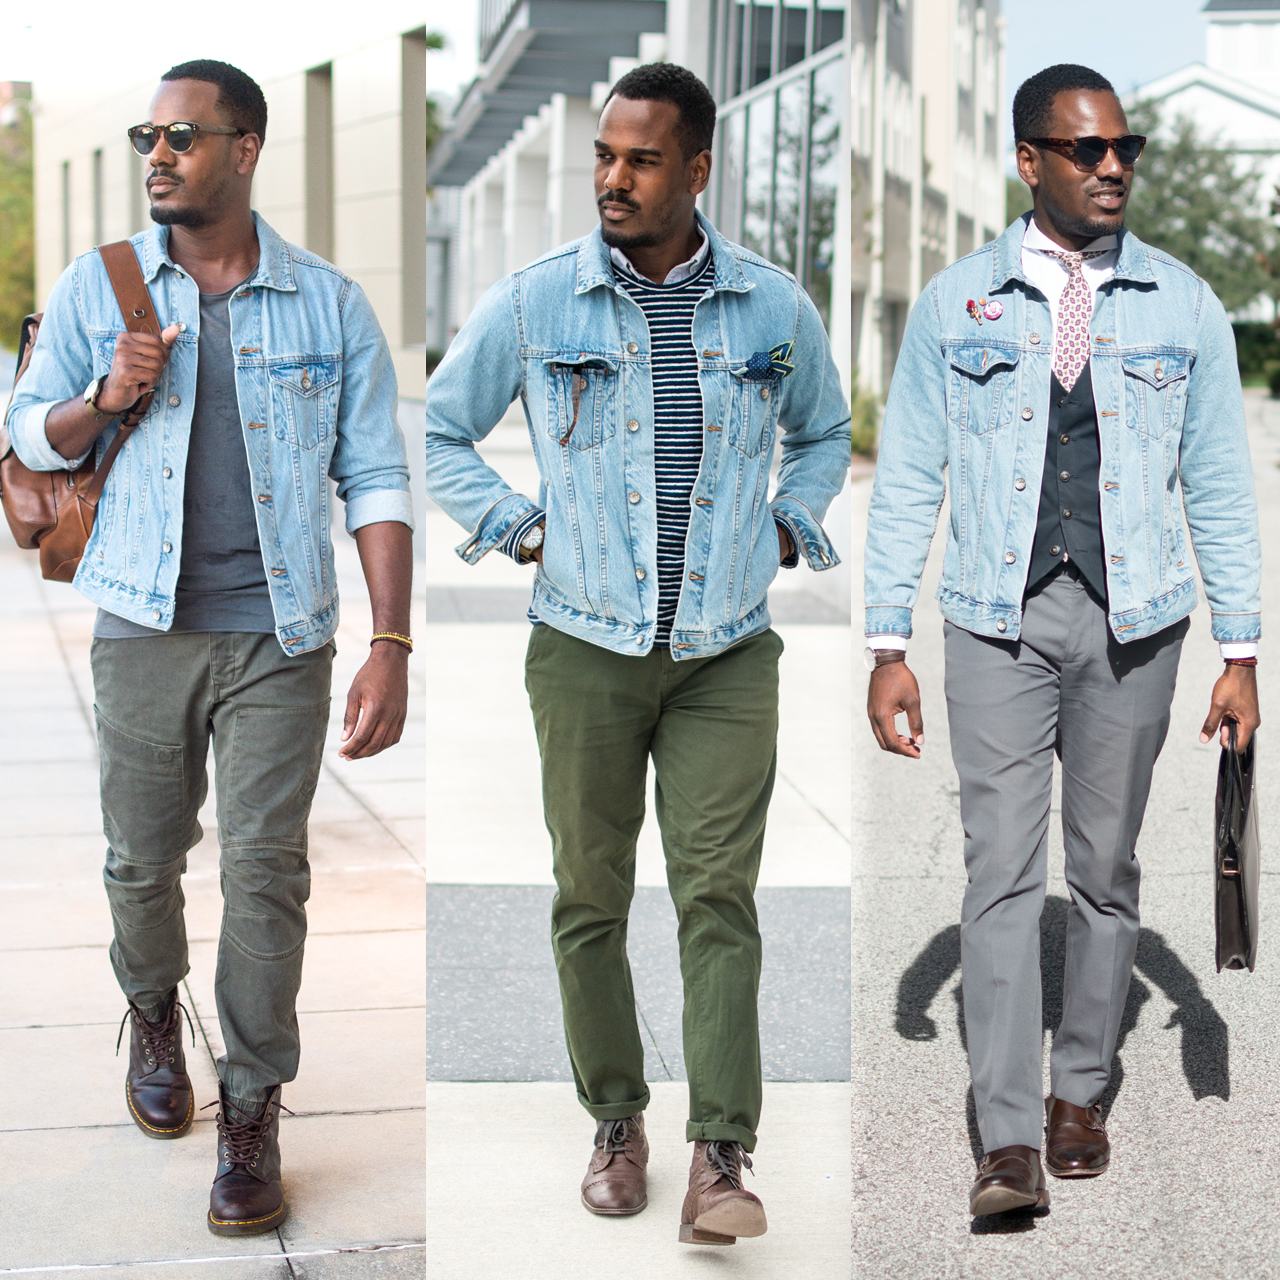 a58207e30b5 How to Wear a Denim Jacket (3 Easy Ways) — Greg's Style Guide